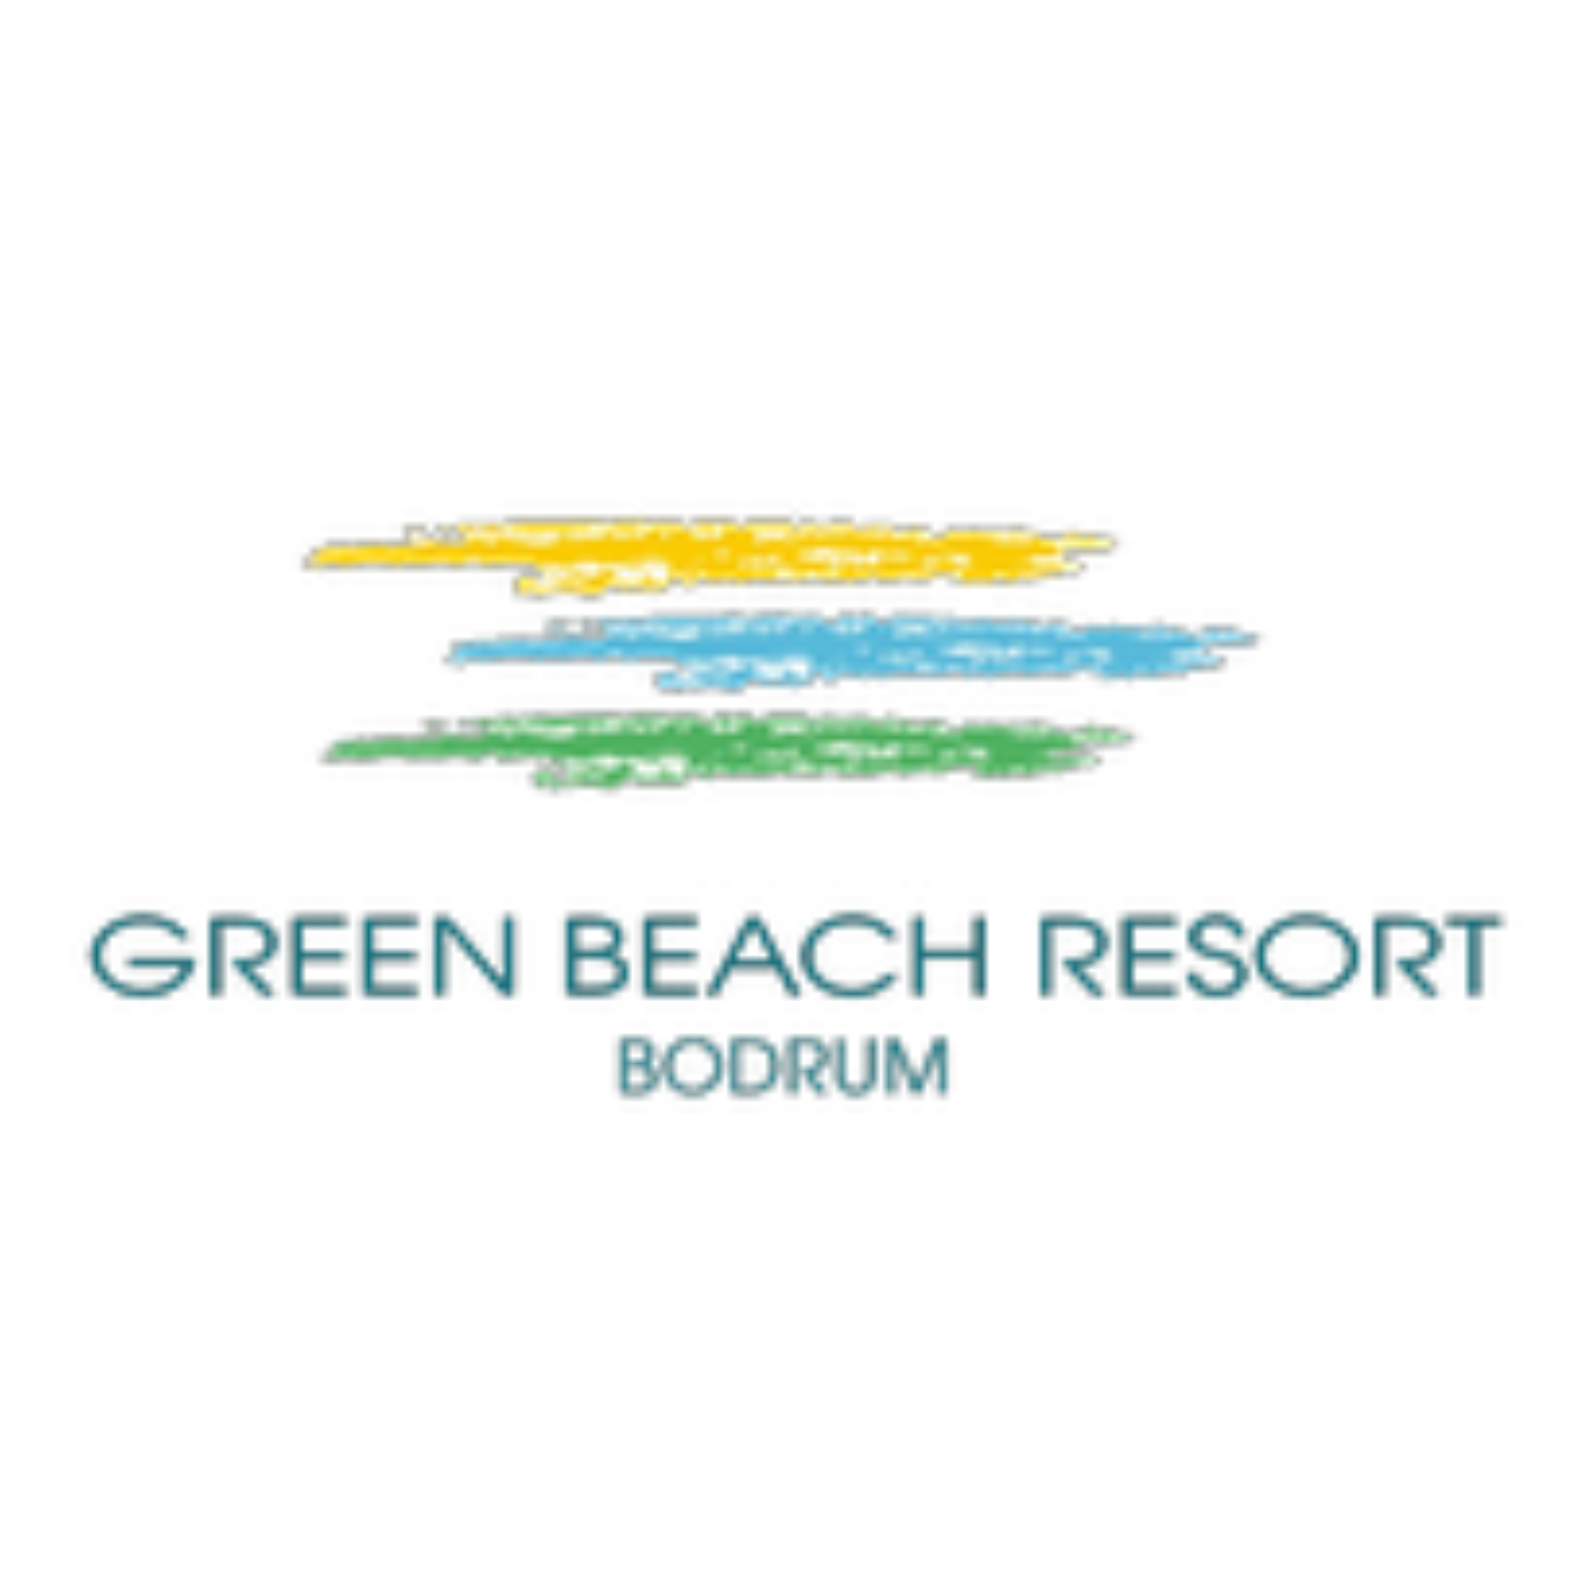 GREEN BEACH RESORT